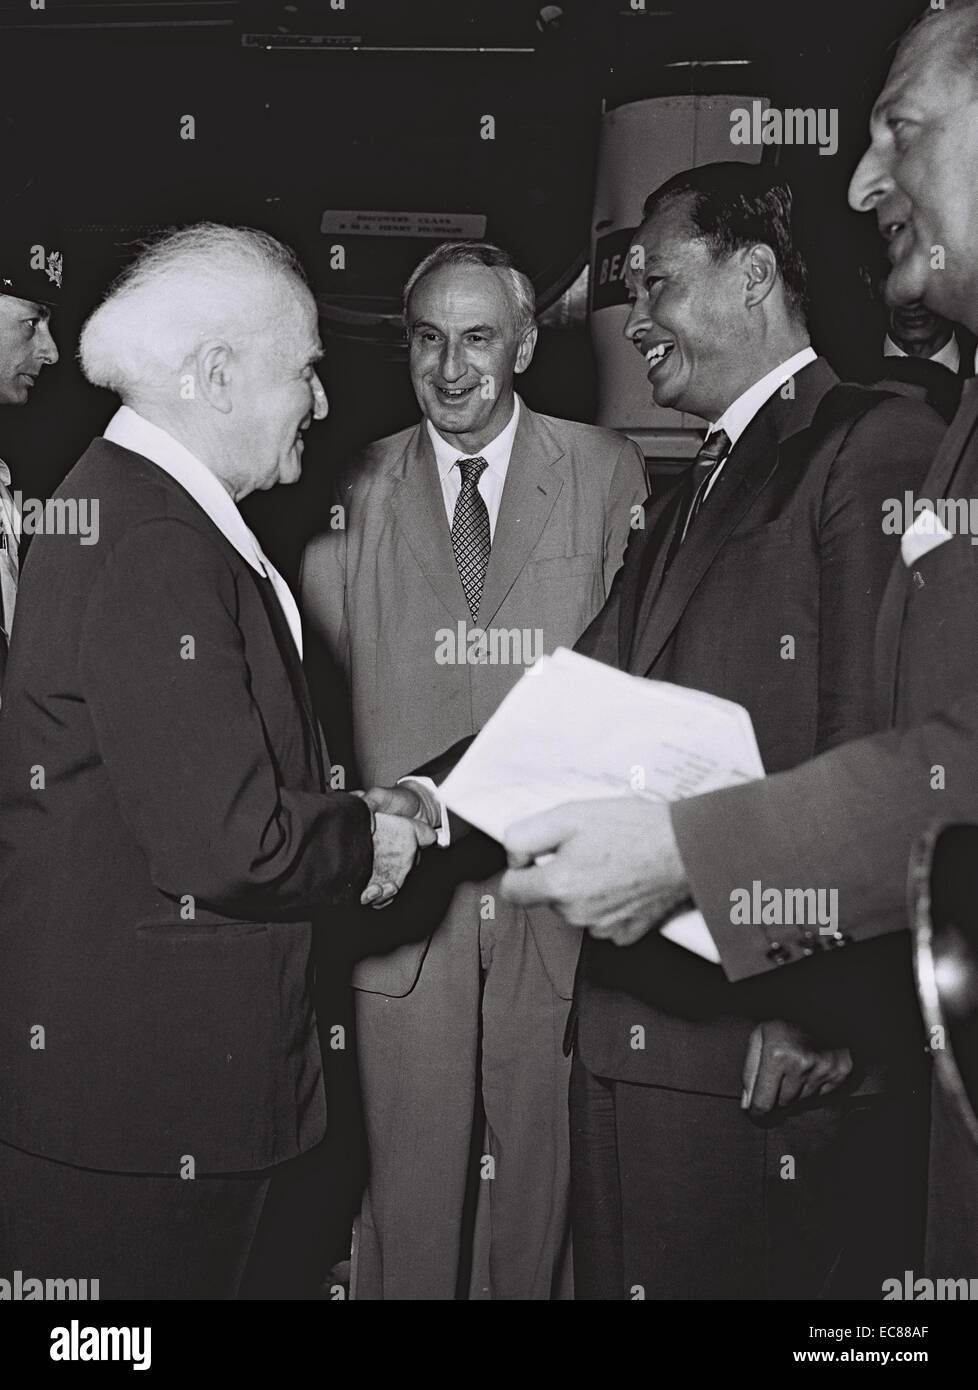 Photograph of David Ben Gurion (1886-1973) with General Ne Win, Prime Minister of Burma. Dated 1959 - Stock Image